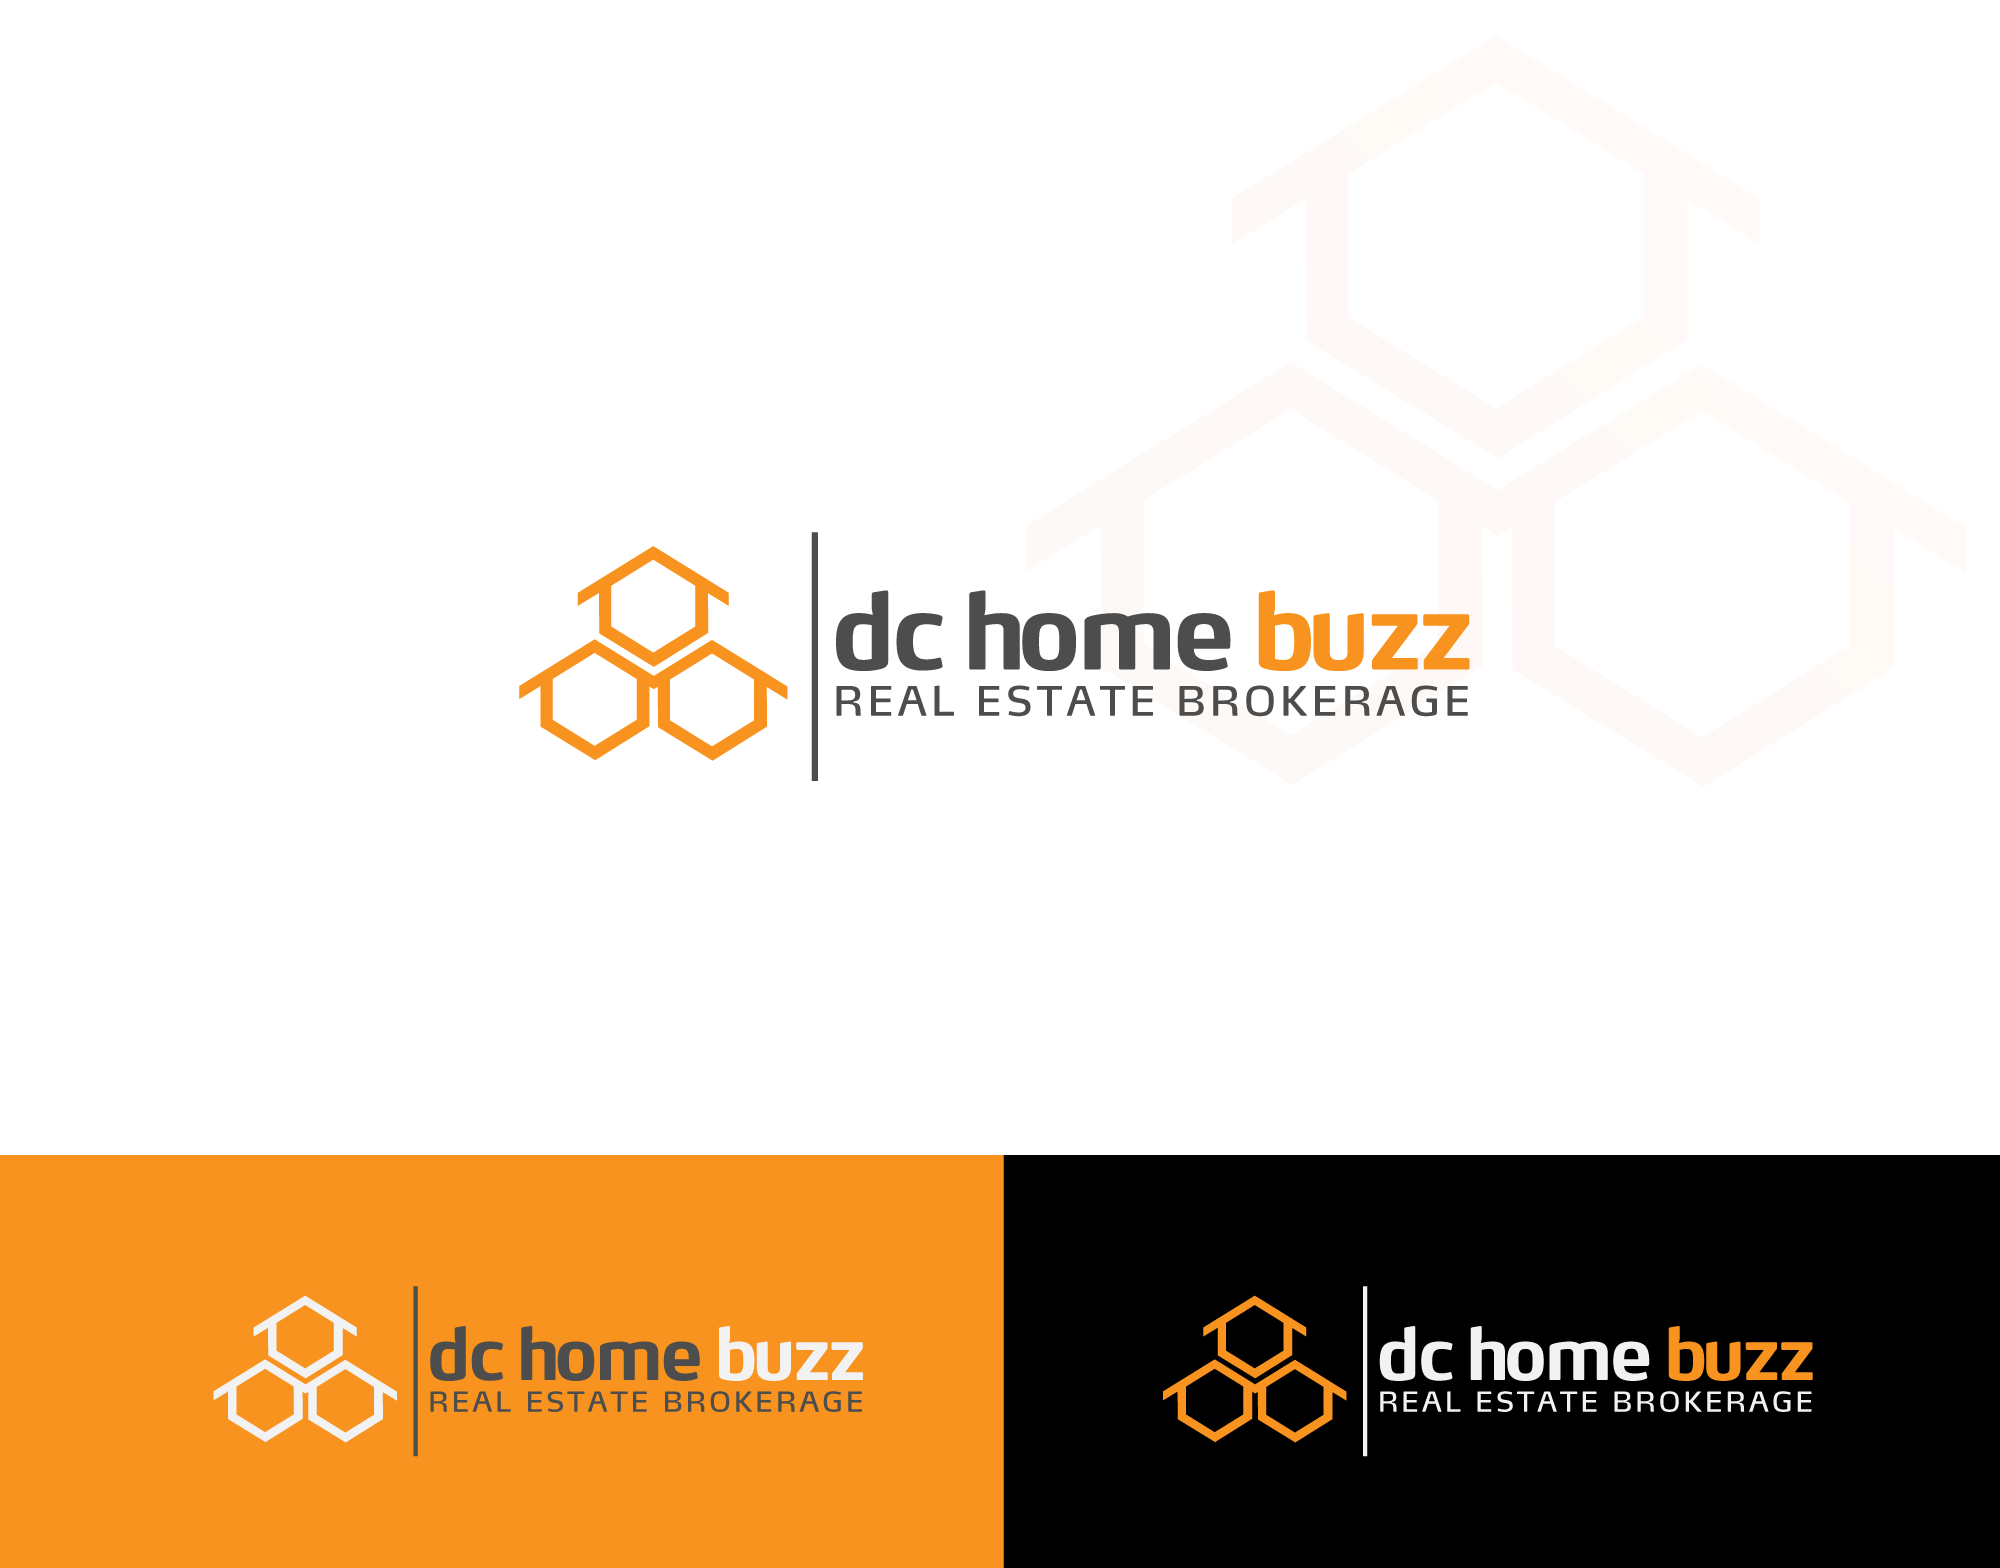 New logo wanted for dc home buzz